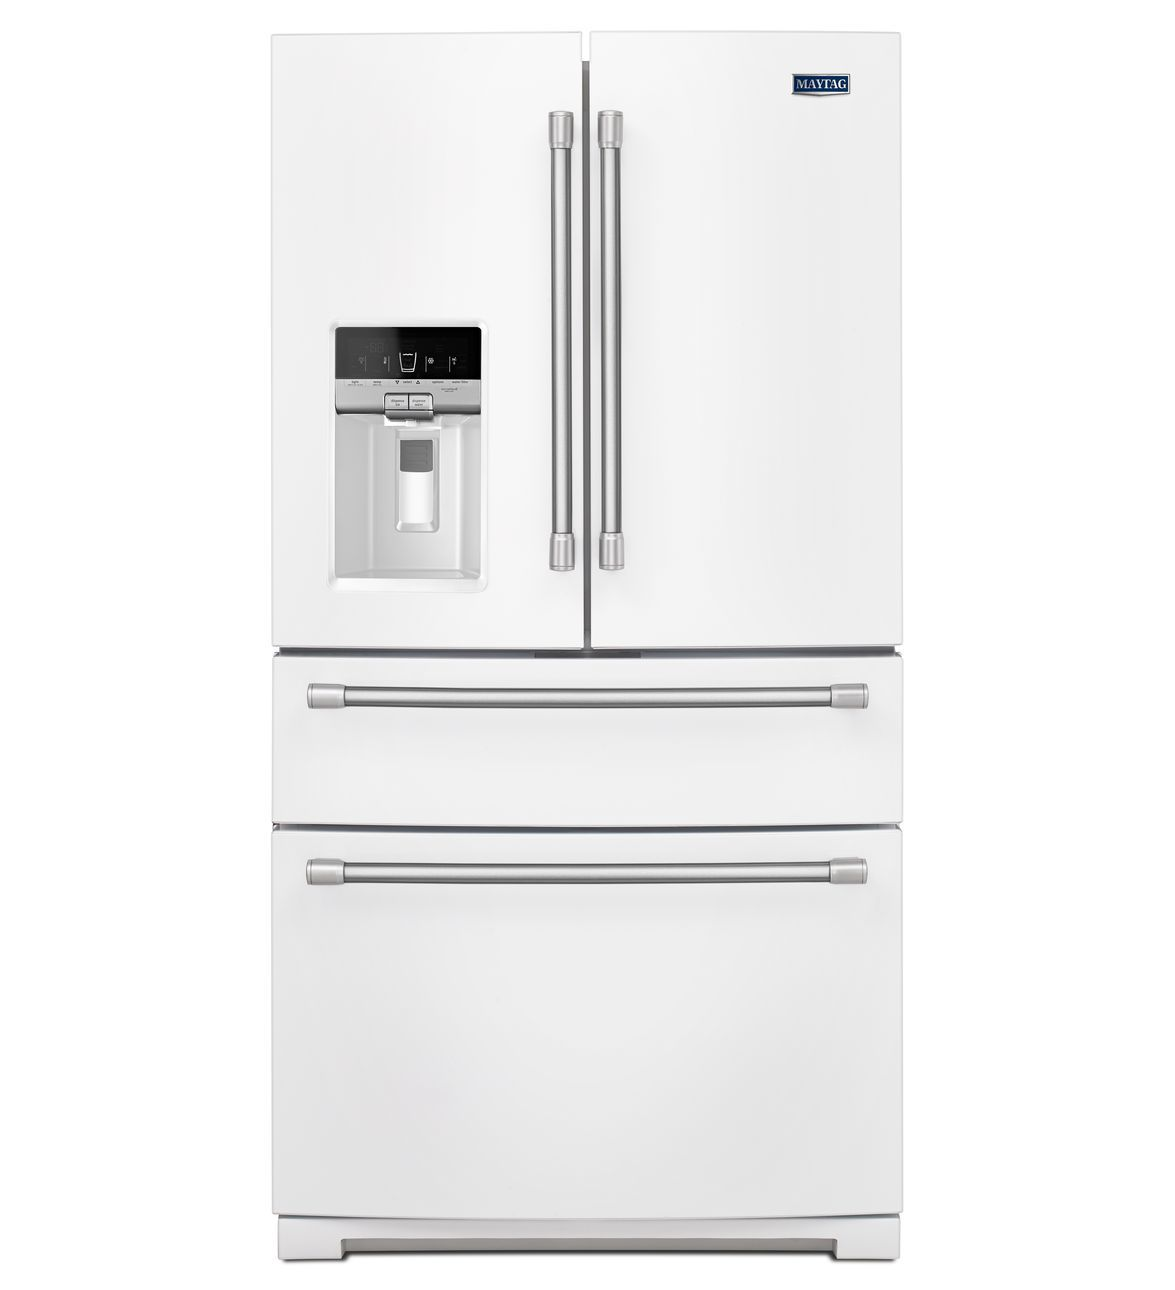 Maytag french door refrigerator reviews - The Maytag French Door Refrigerator Review